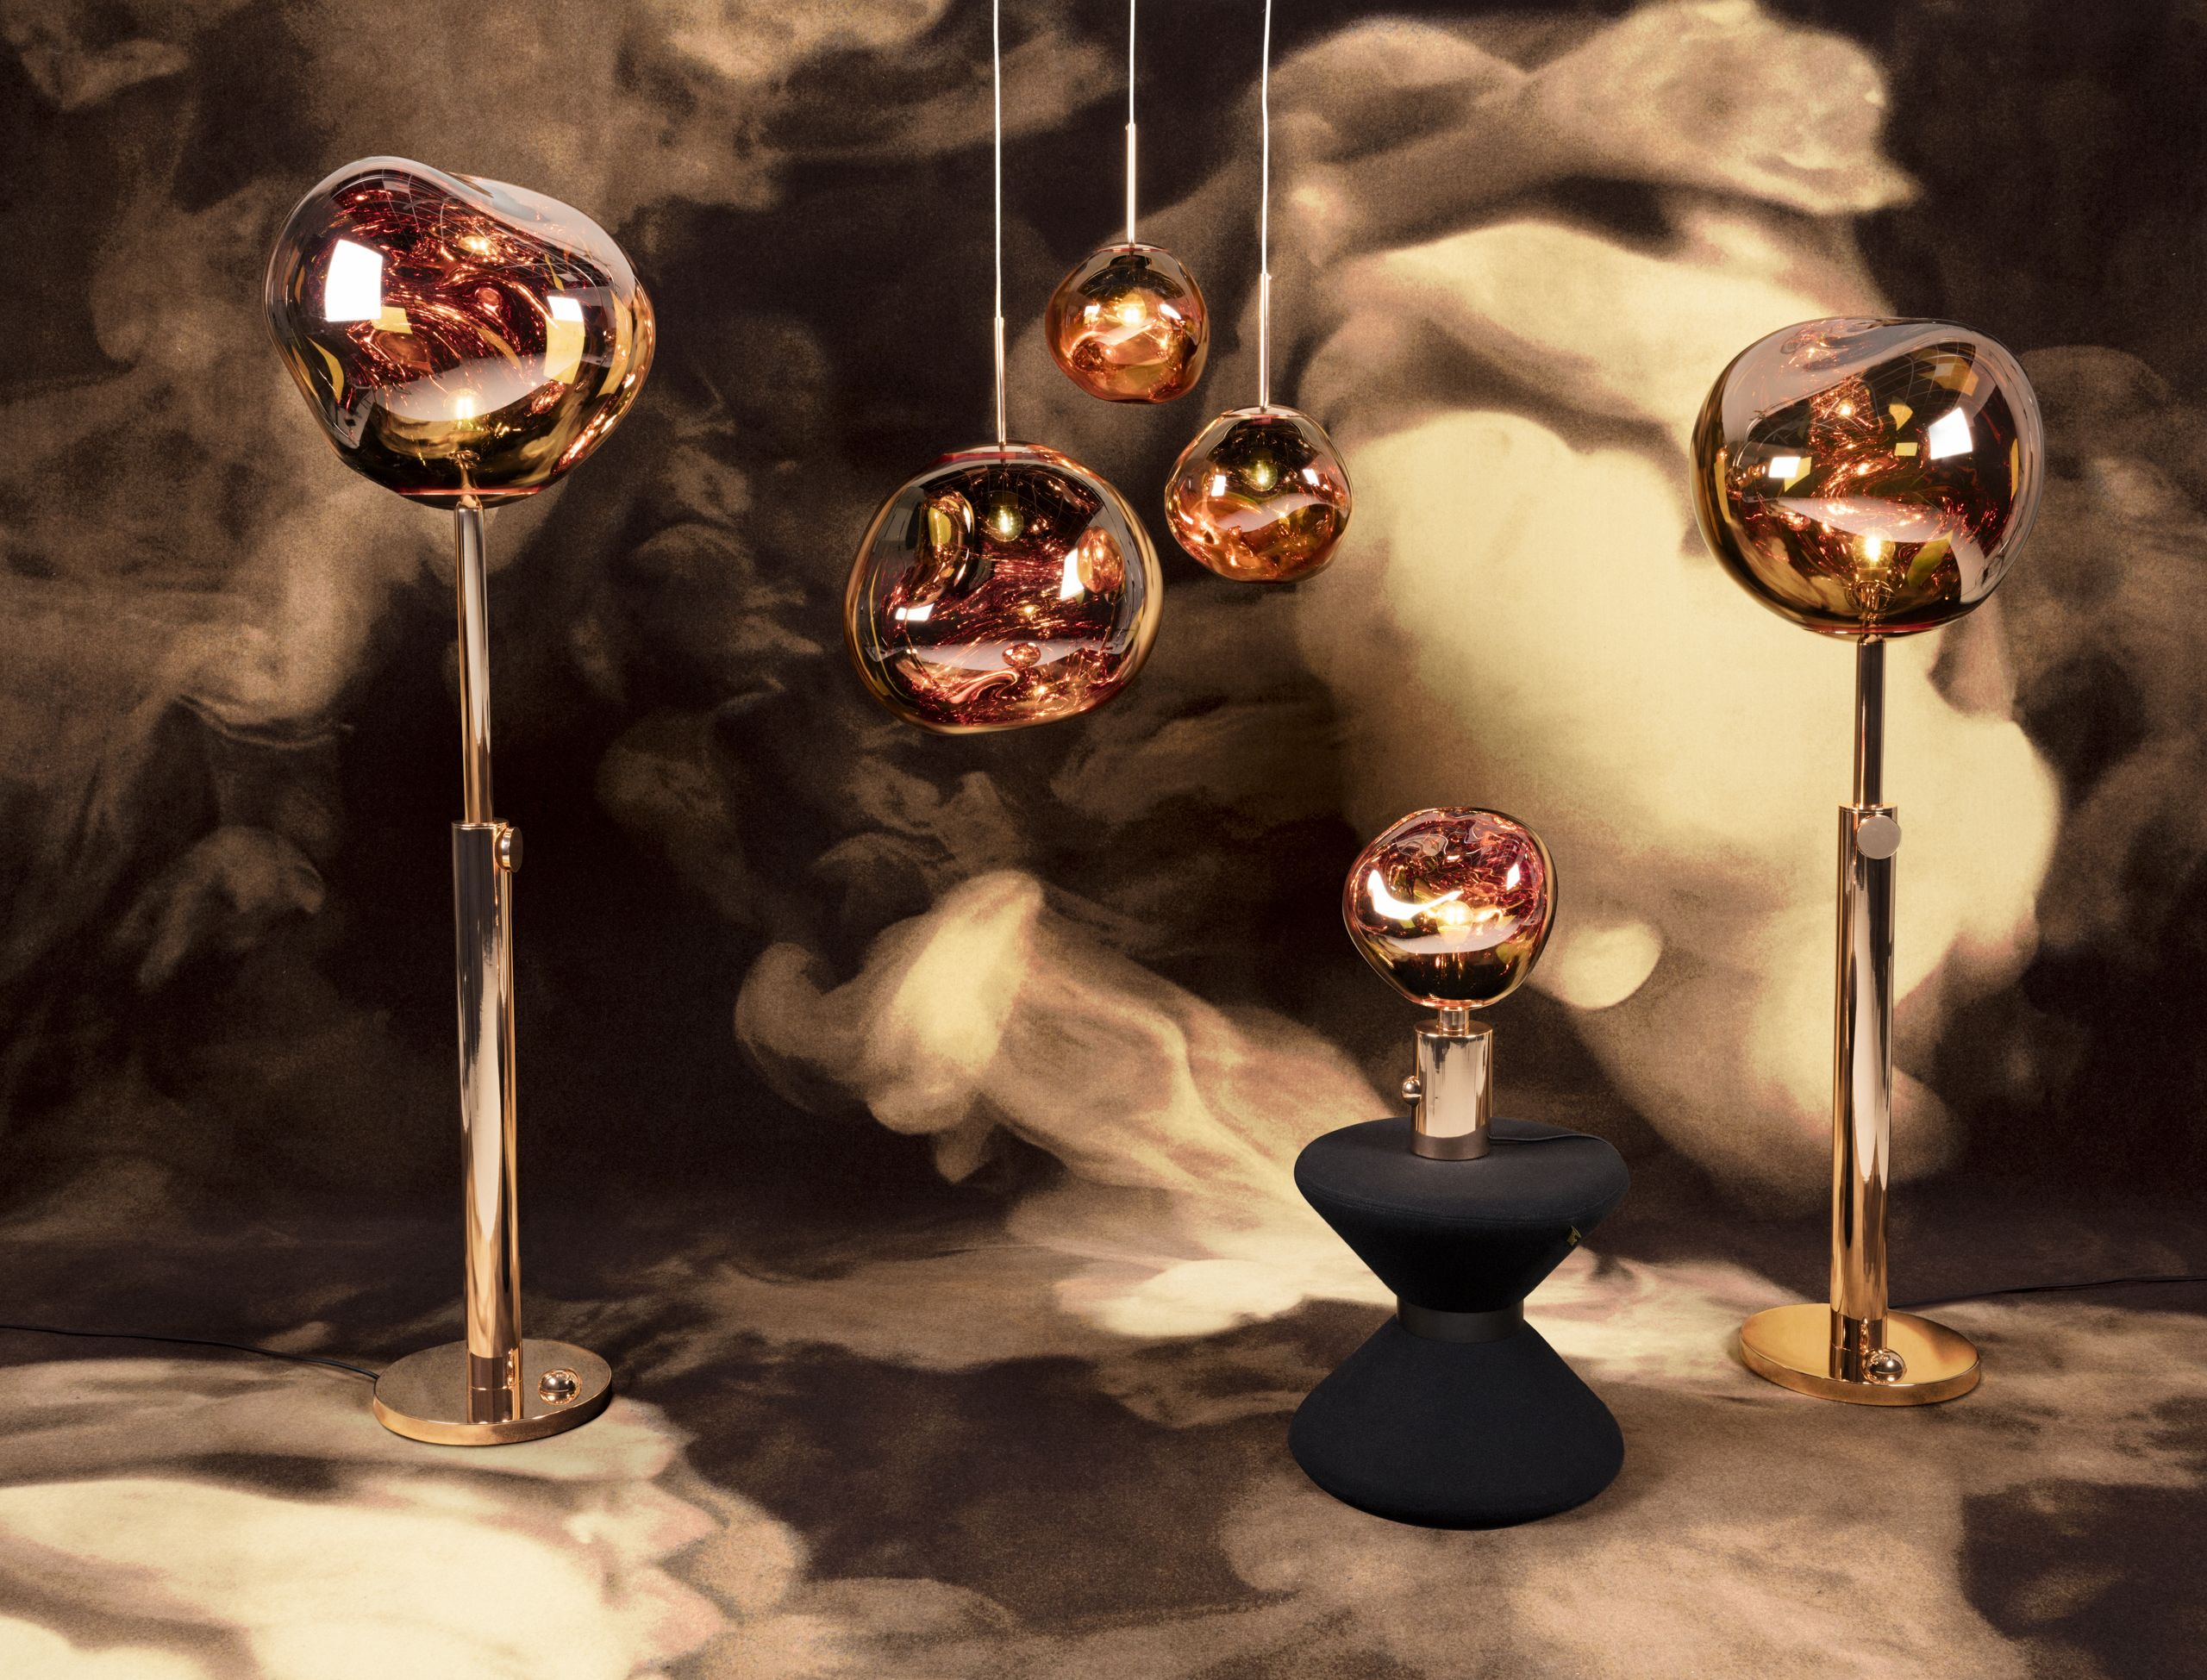 Melt Copper Family With Drum Stool 15 Off All Tom Dixon Lighting Furniture And Accessories Now Thru October 15th Shop The Coll Vloerlamp Hanglamp Tafellamp